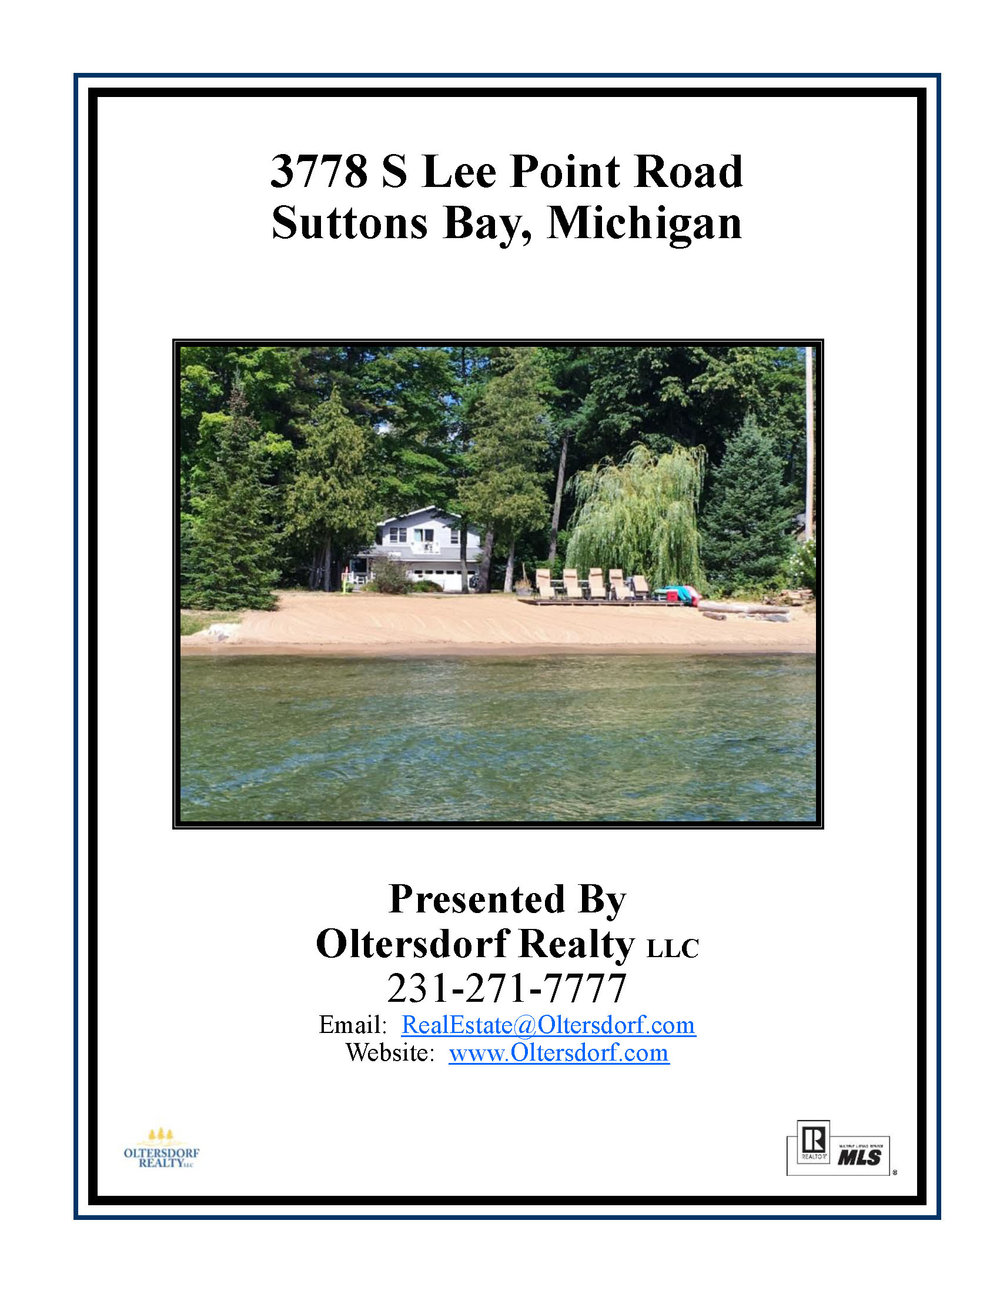 3778 S Lee Point Road, Suttons Bay waterfront home for sale by Oltersdorf Realty LLC Suttons Bay & Leelanau County Realtors - Photo Gallery (1).jpg